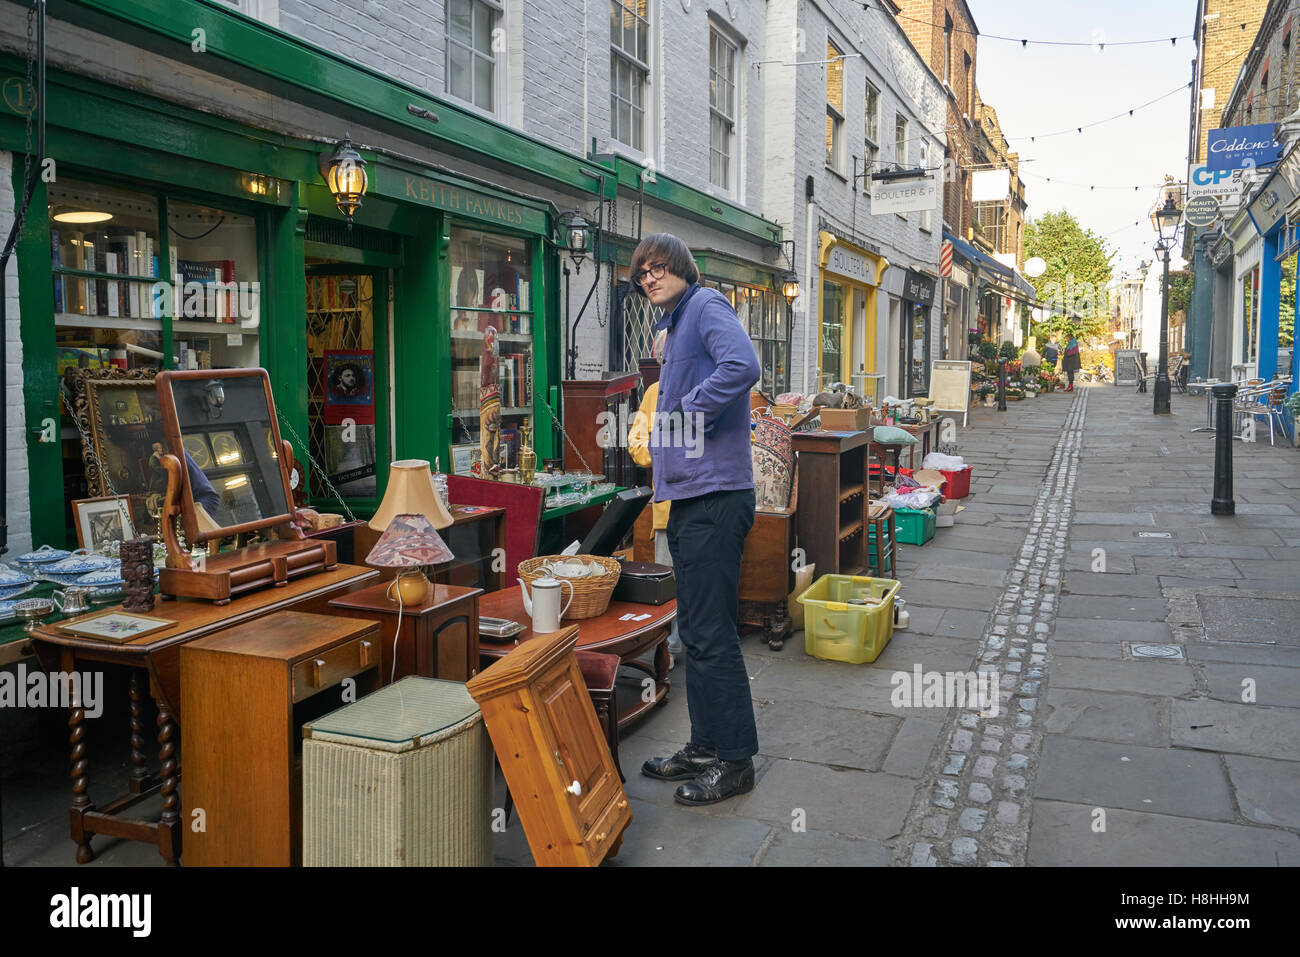 second hand shop,  Hampstead,  flask walk - Stock Image